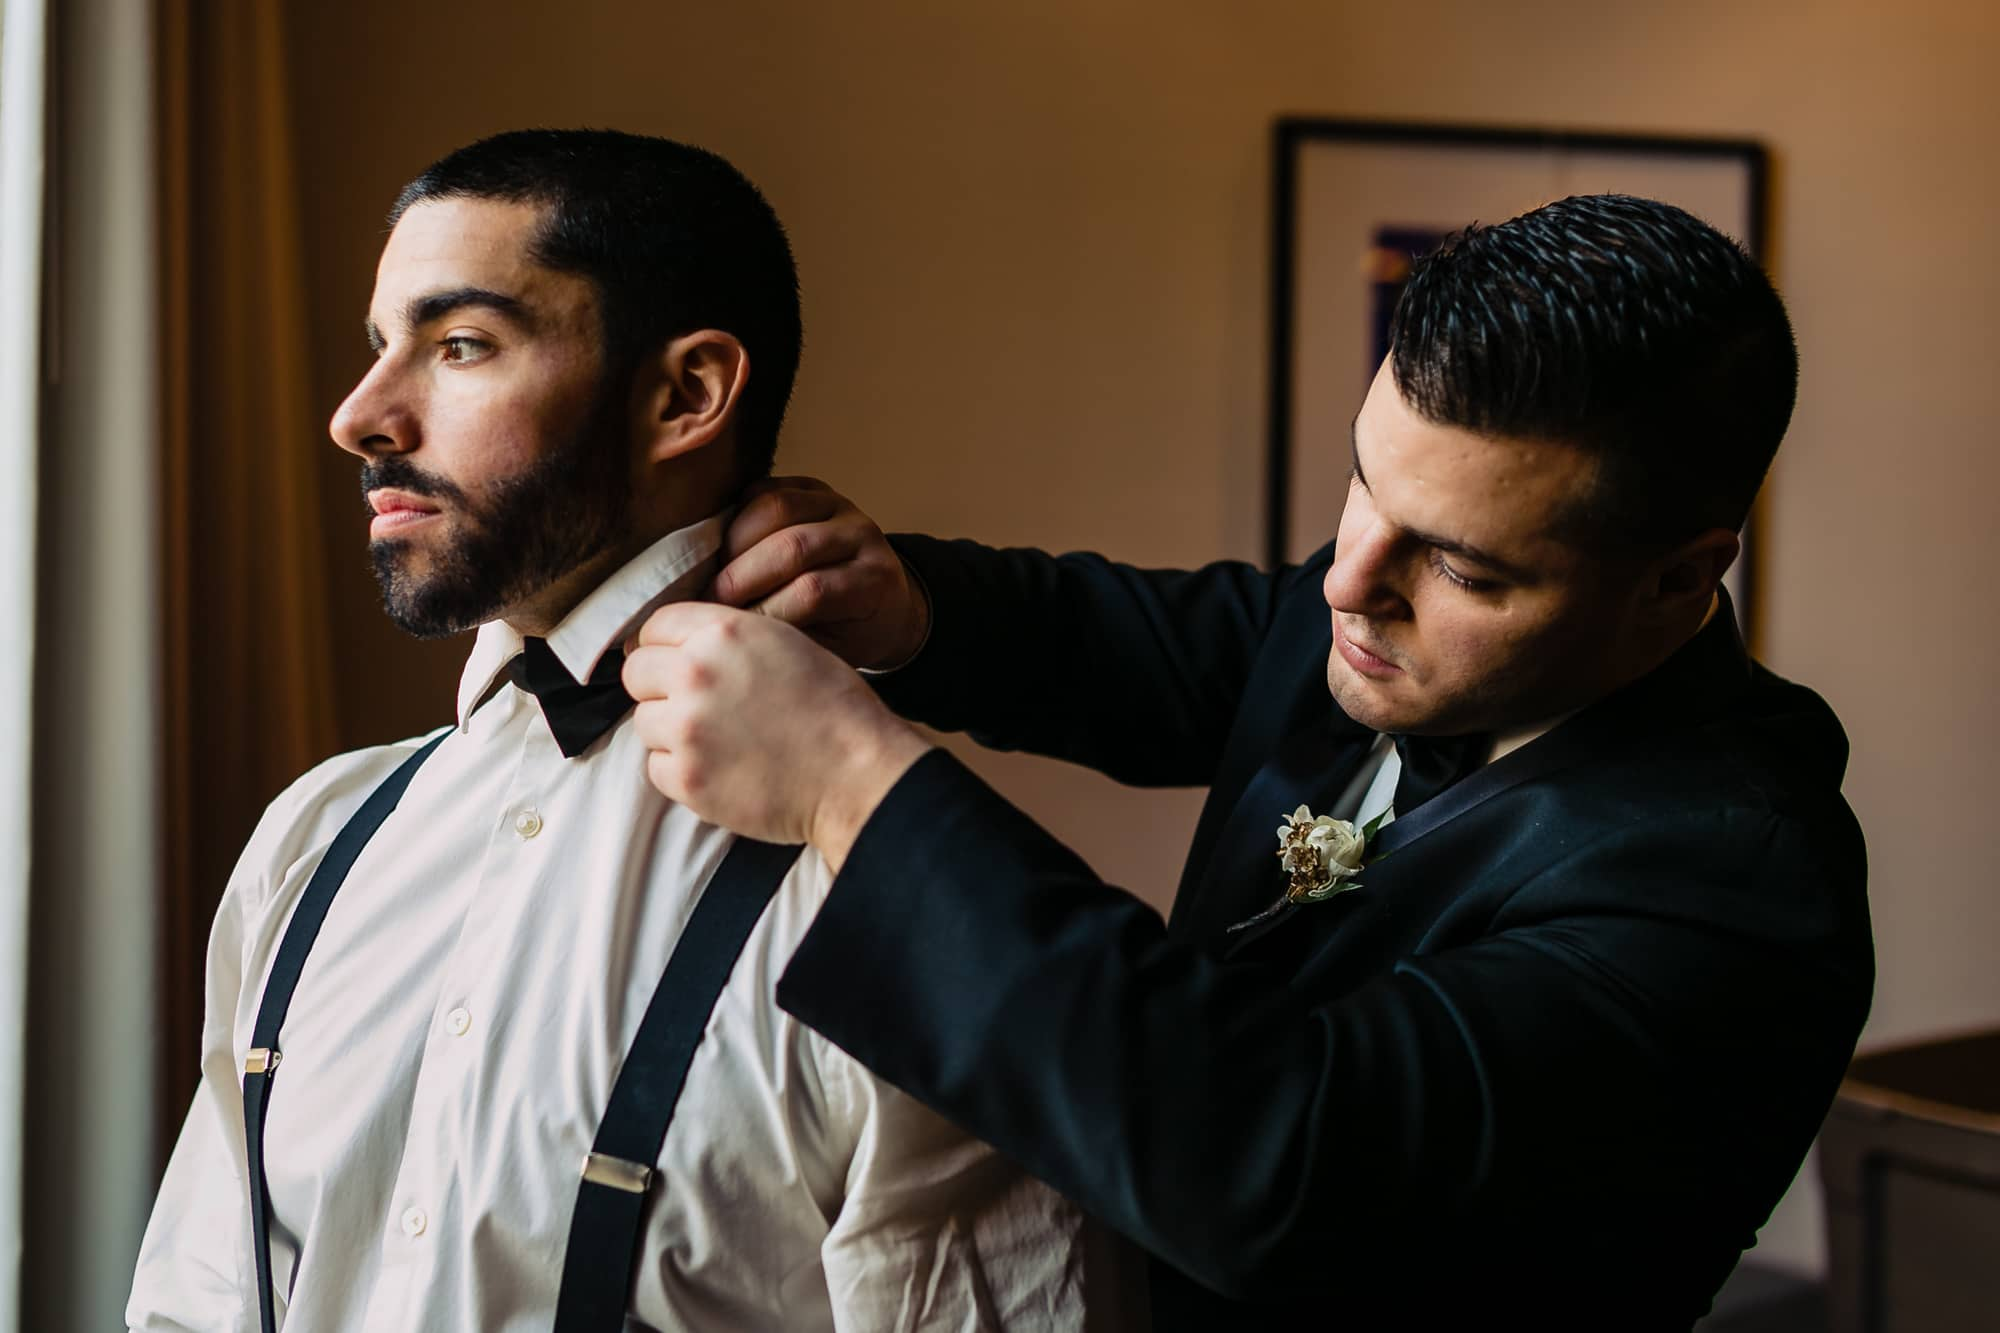 Groomsman helping groom adjust tie